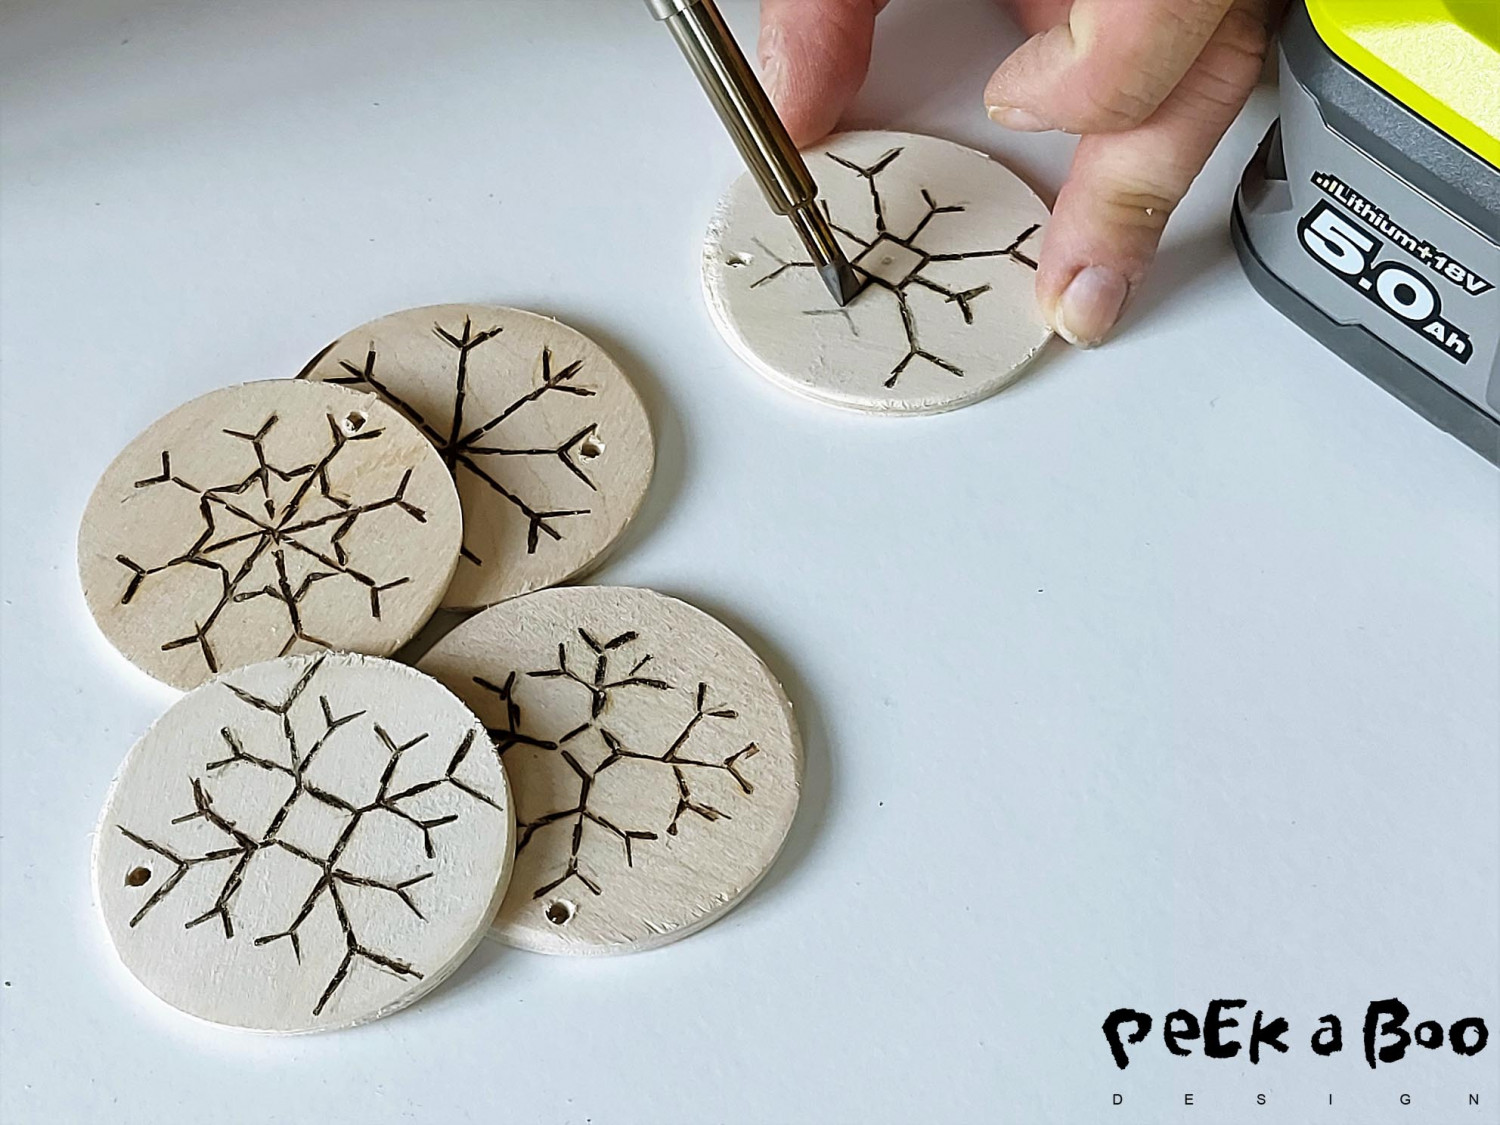 The soldering iron has two tips, this flat one is perfect for these edgy snowflakes.